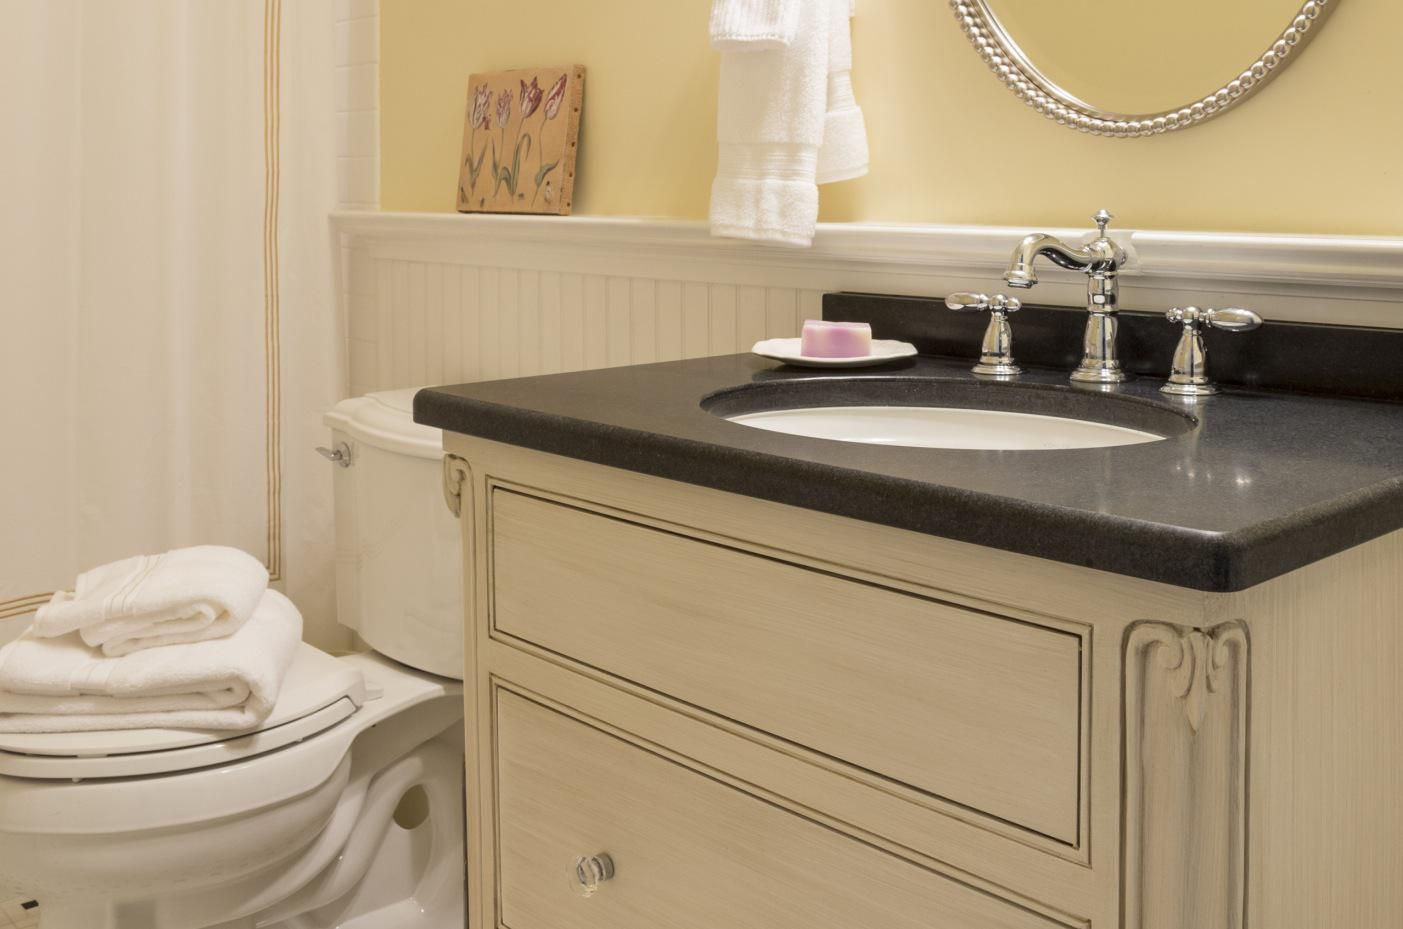 Remodel Your Small Bathroom Fast And Inexpensively